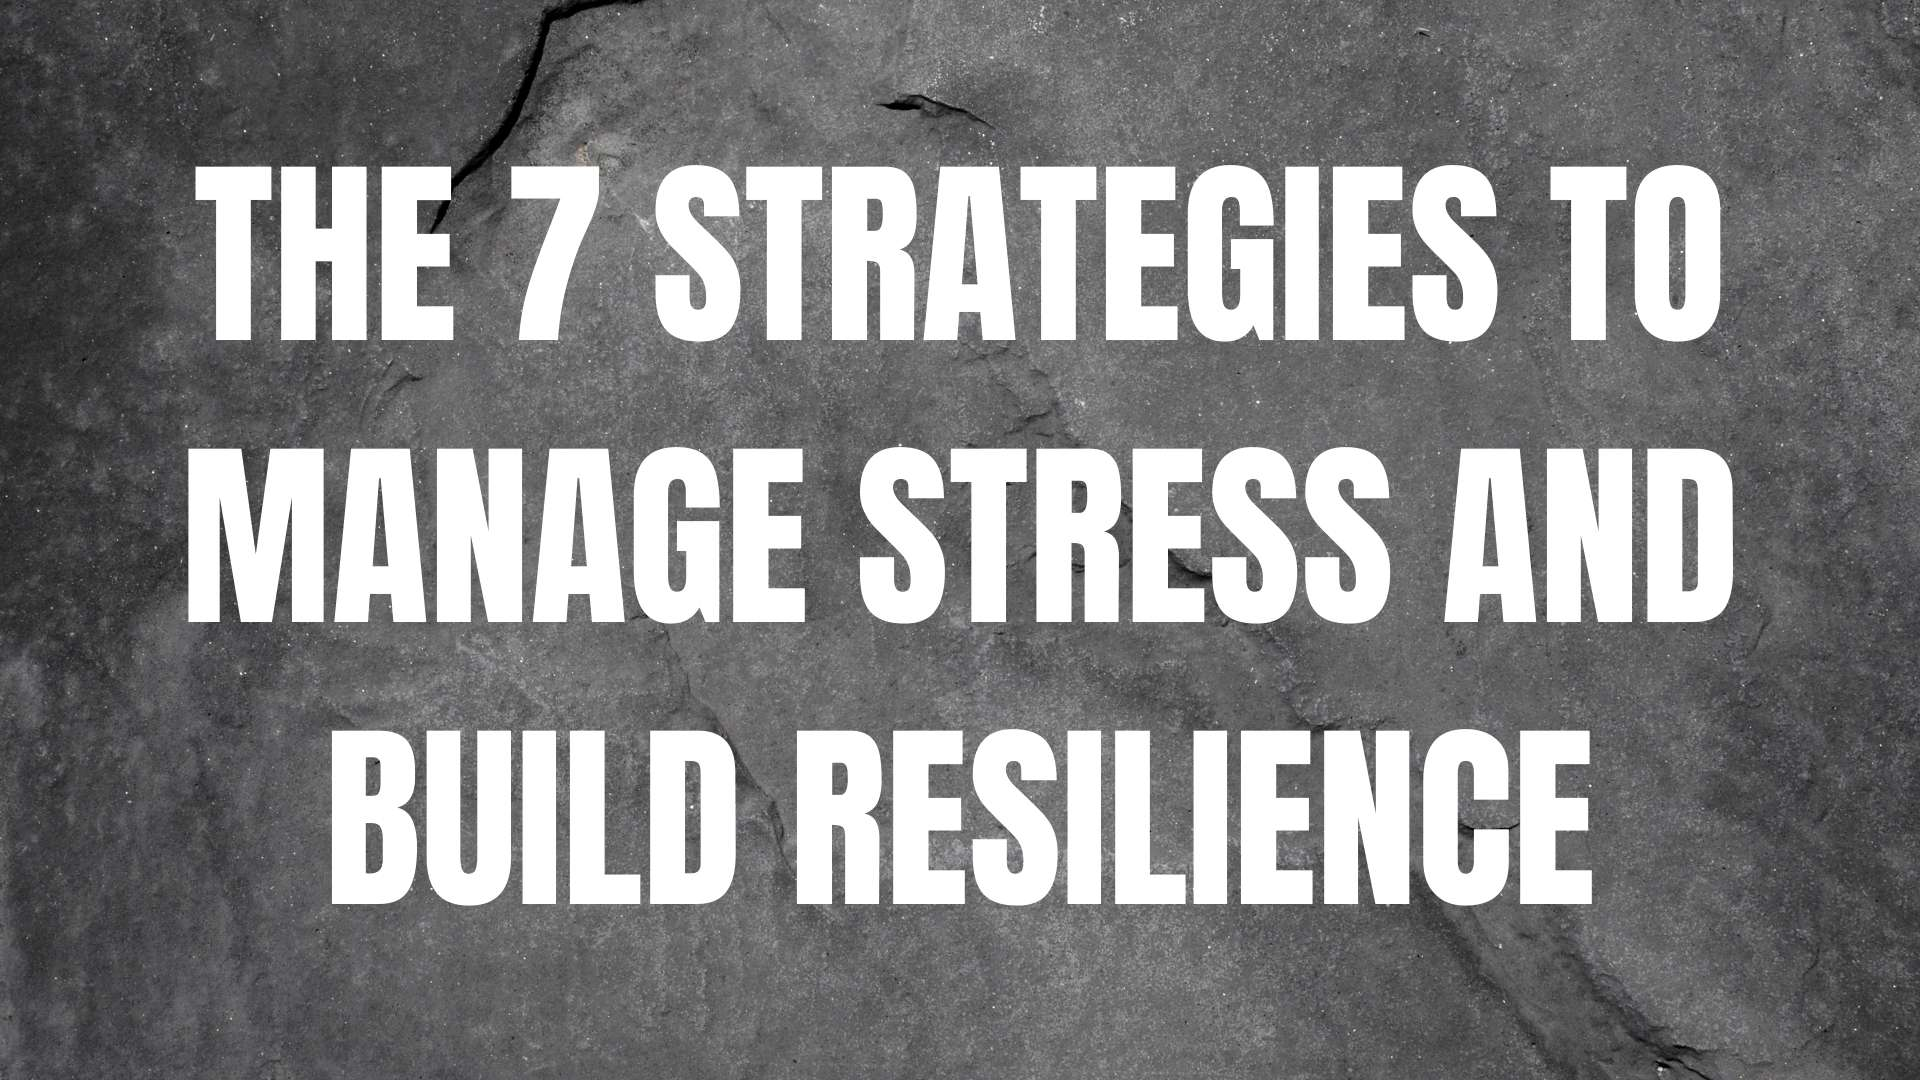 The 7 Strategies to Manage Stress and Build Resilience